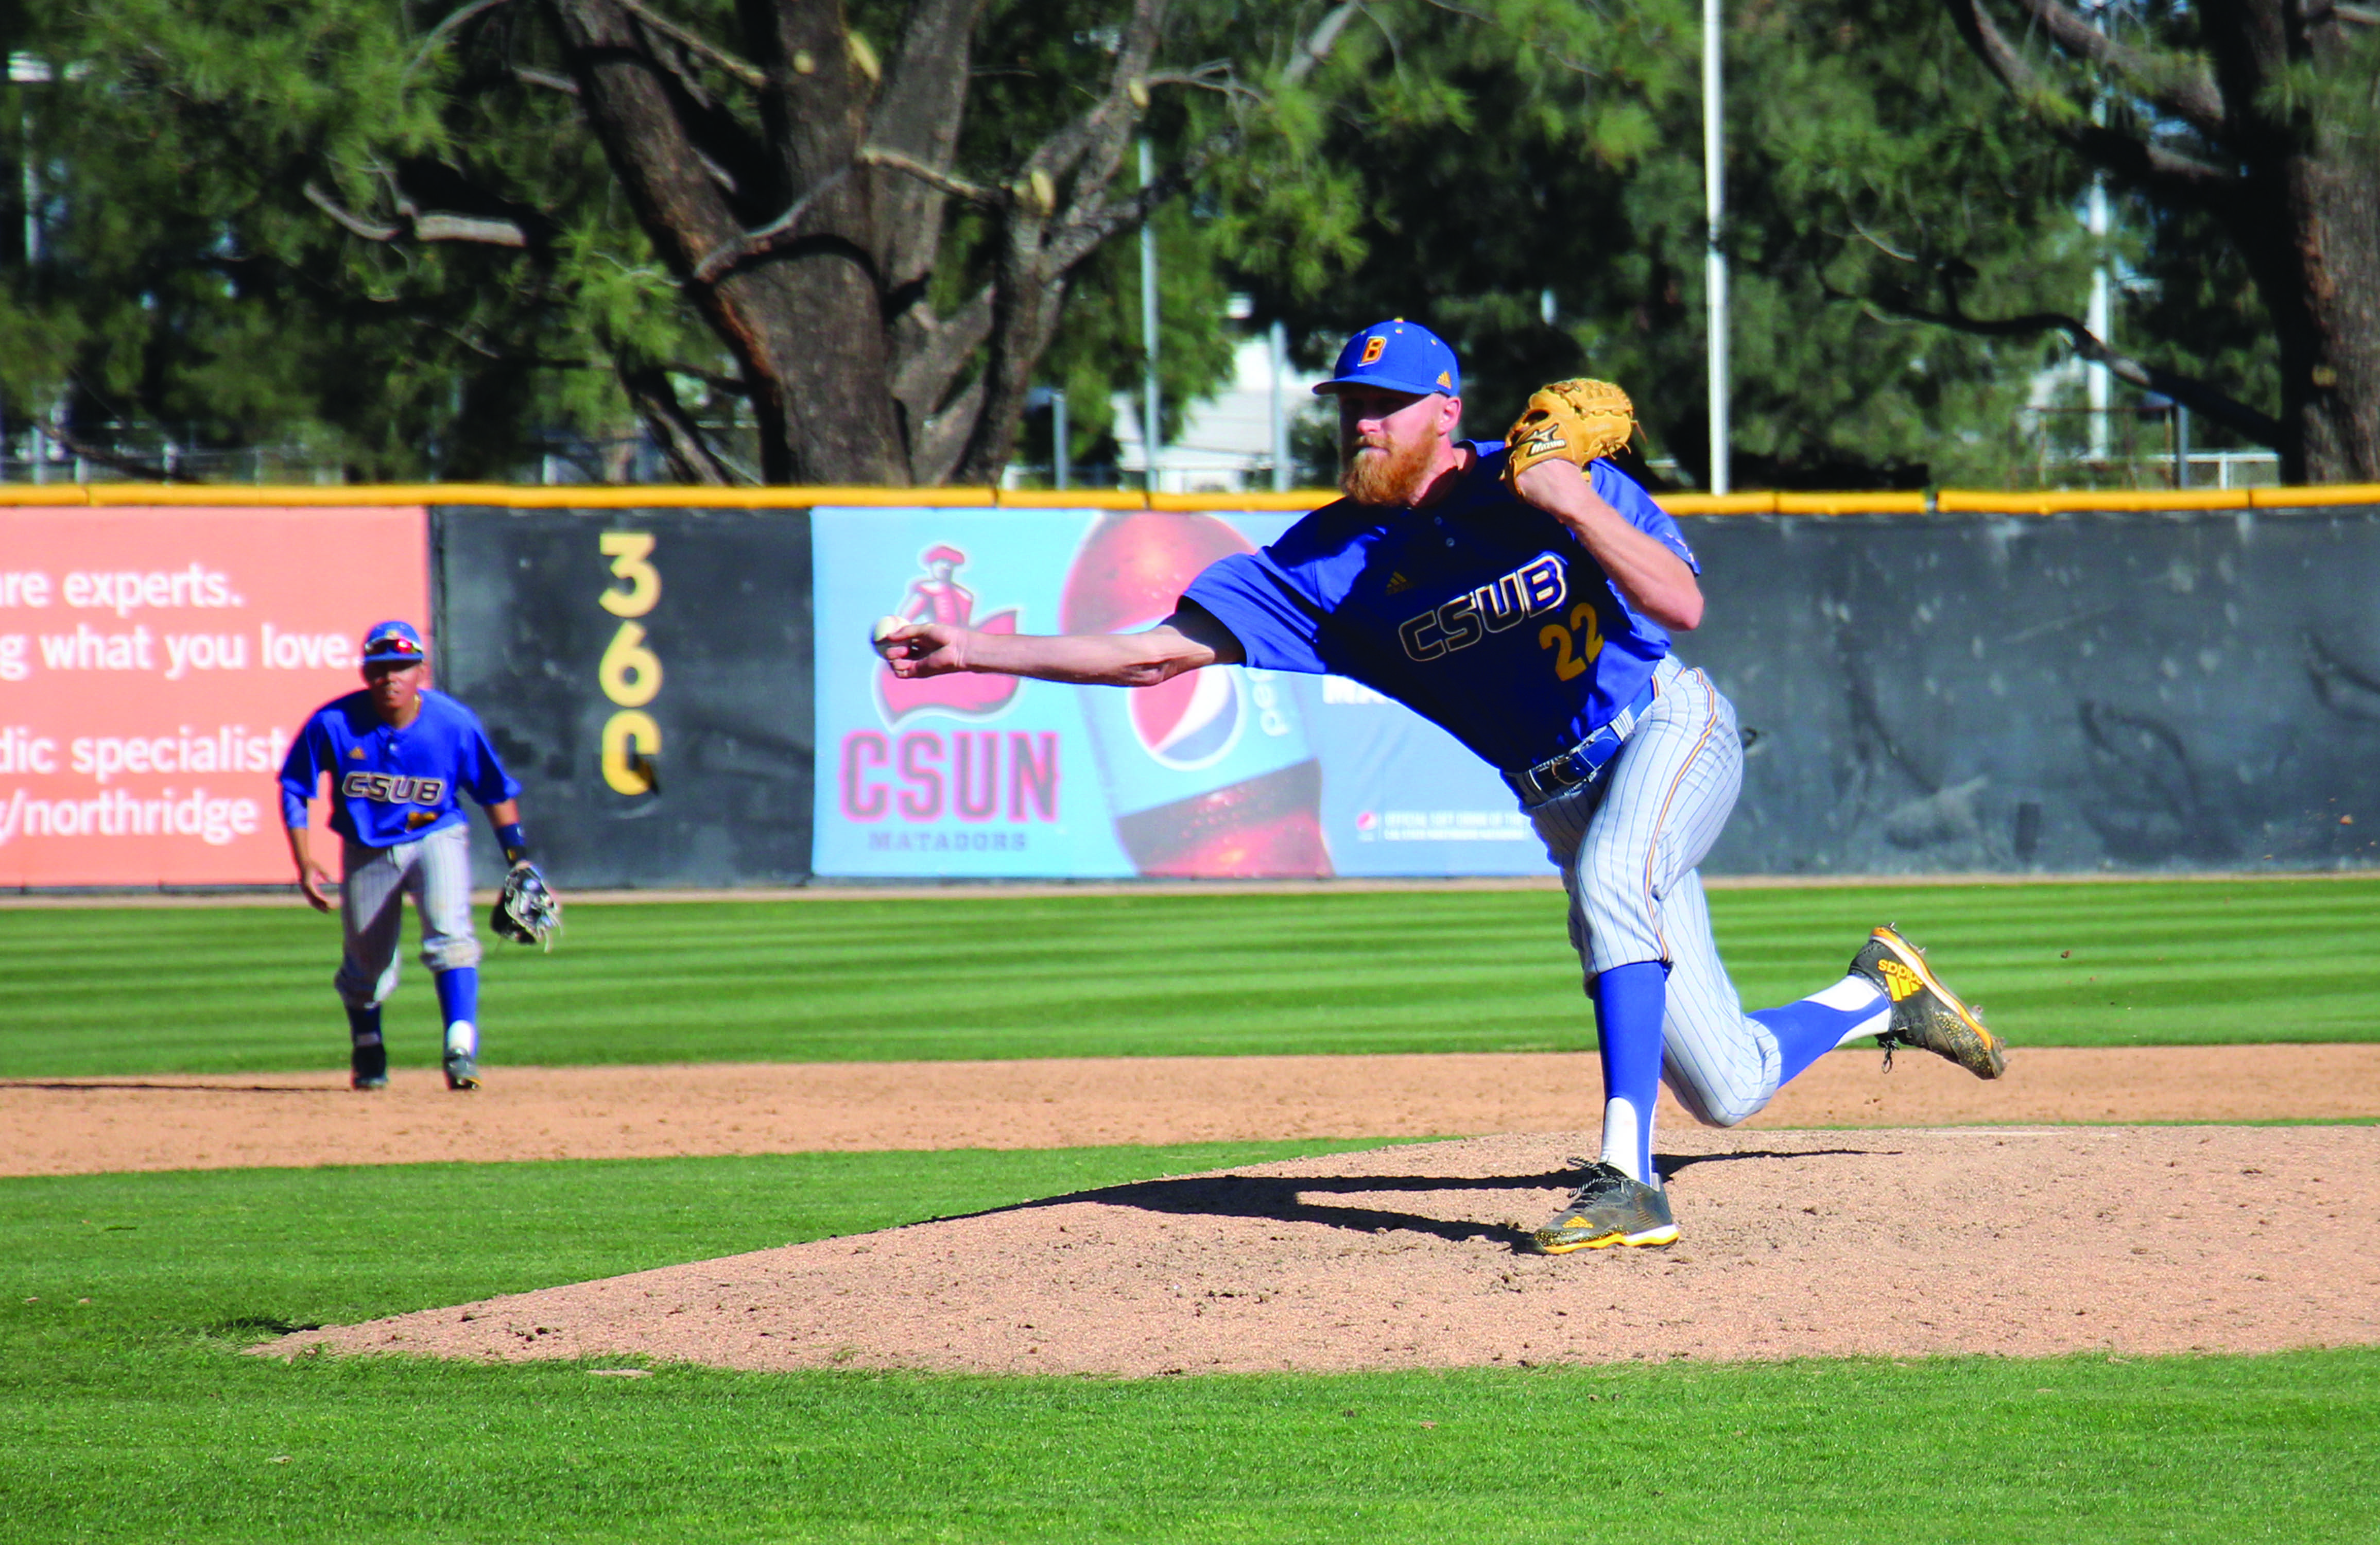 Roadrunner pitcher almost called it quits before time at CSUB